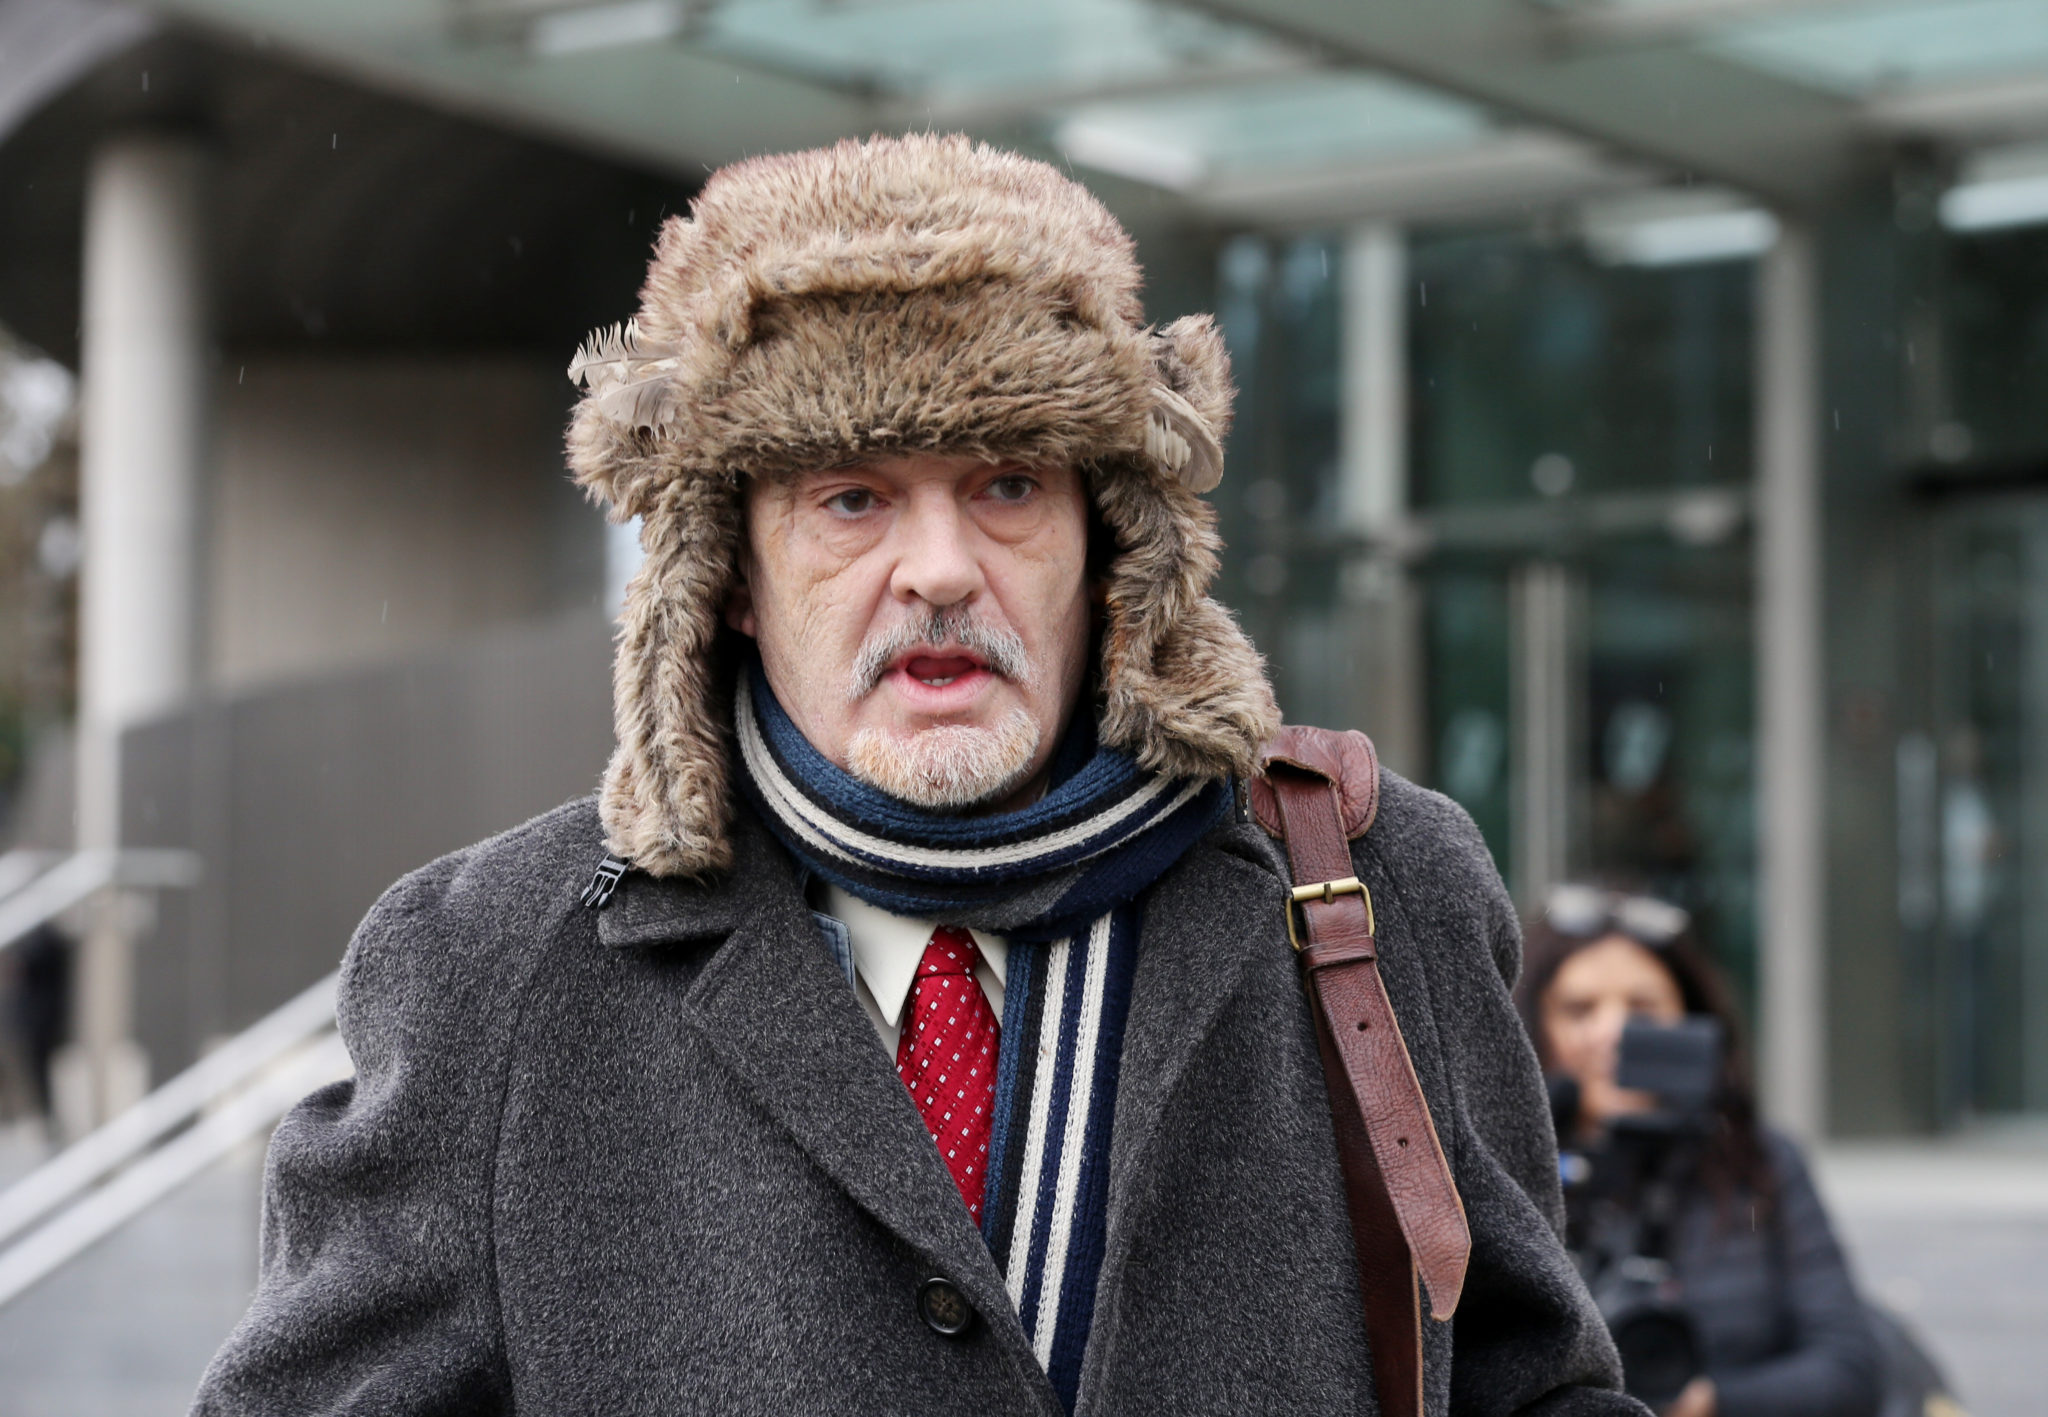 Ian Bailey leaving the High Court after his hearing for extradition proceedings began